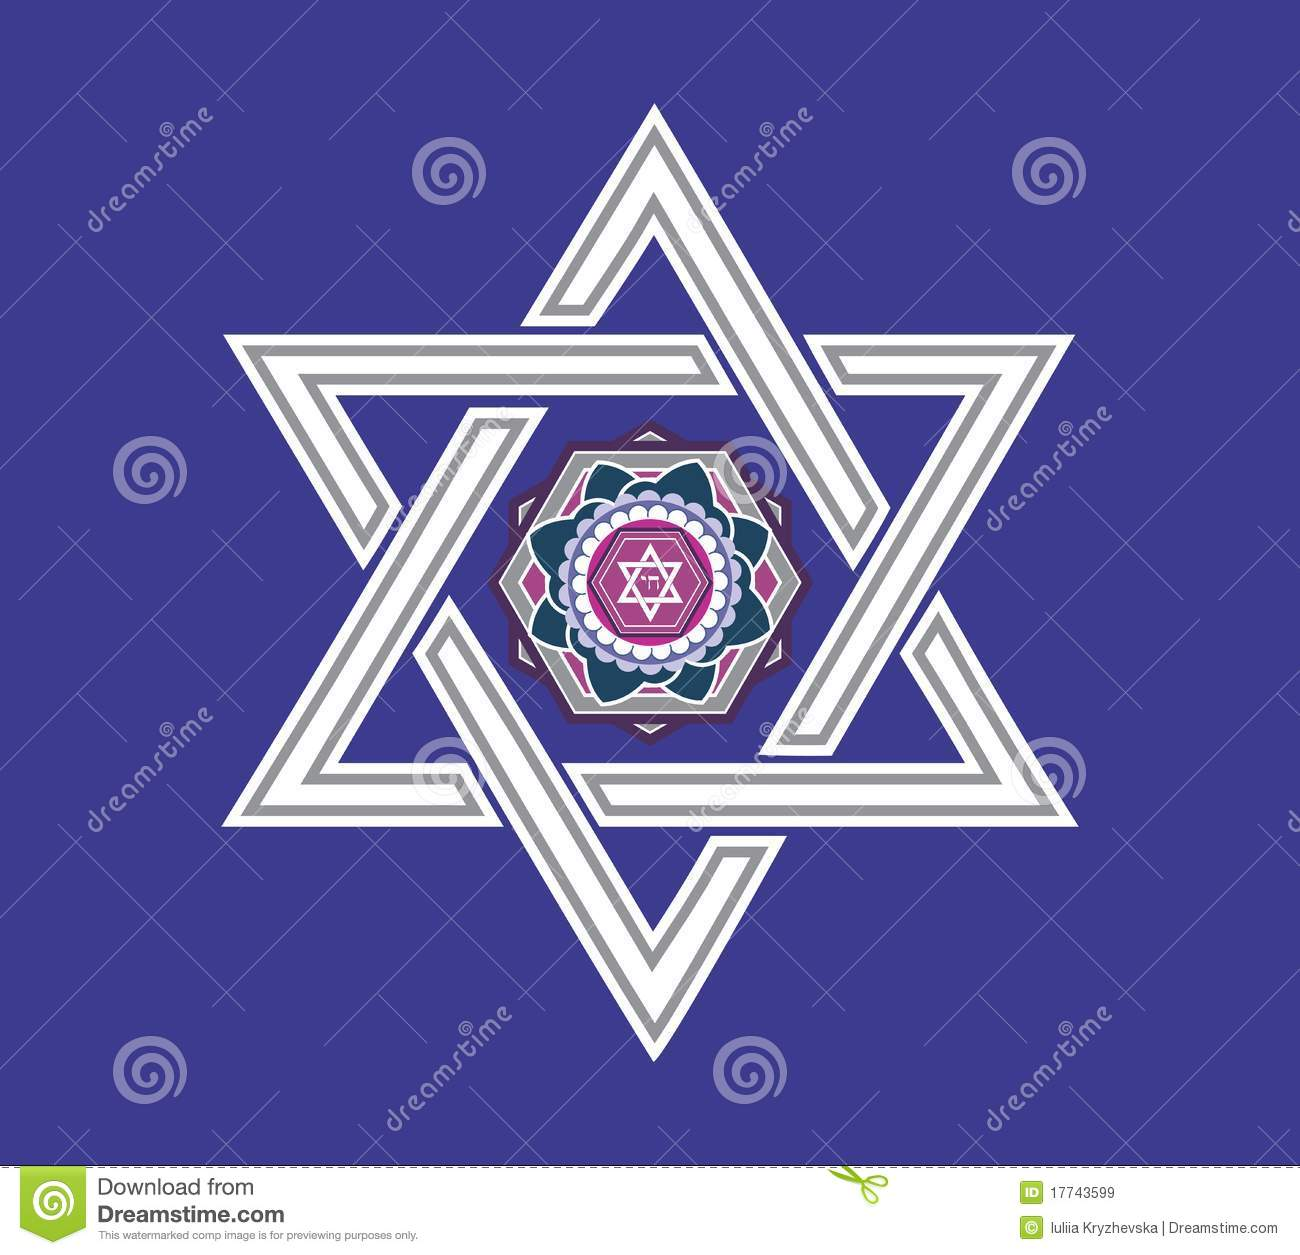 Jewish Star Design - Illustration Royalty Free Stock Images - Image ...